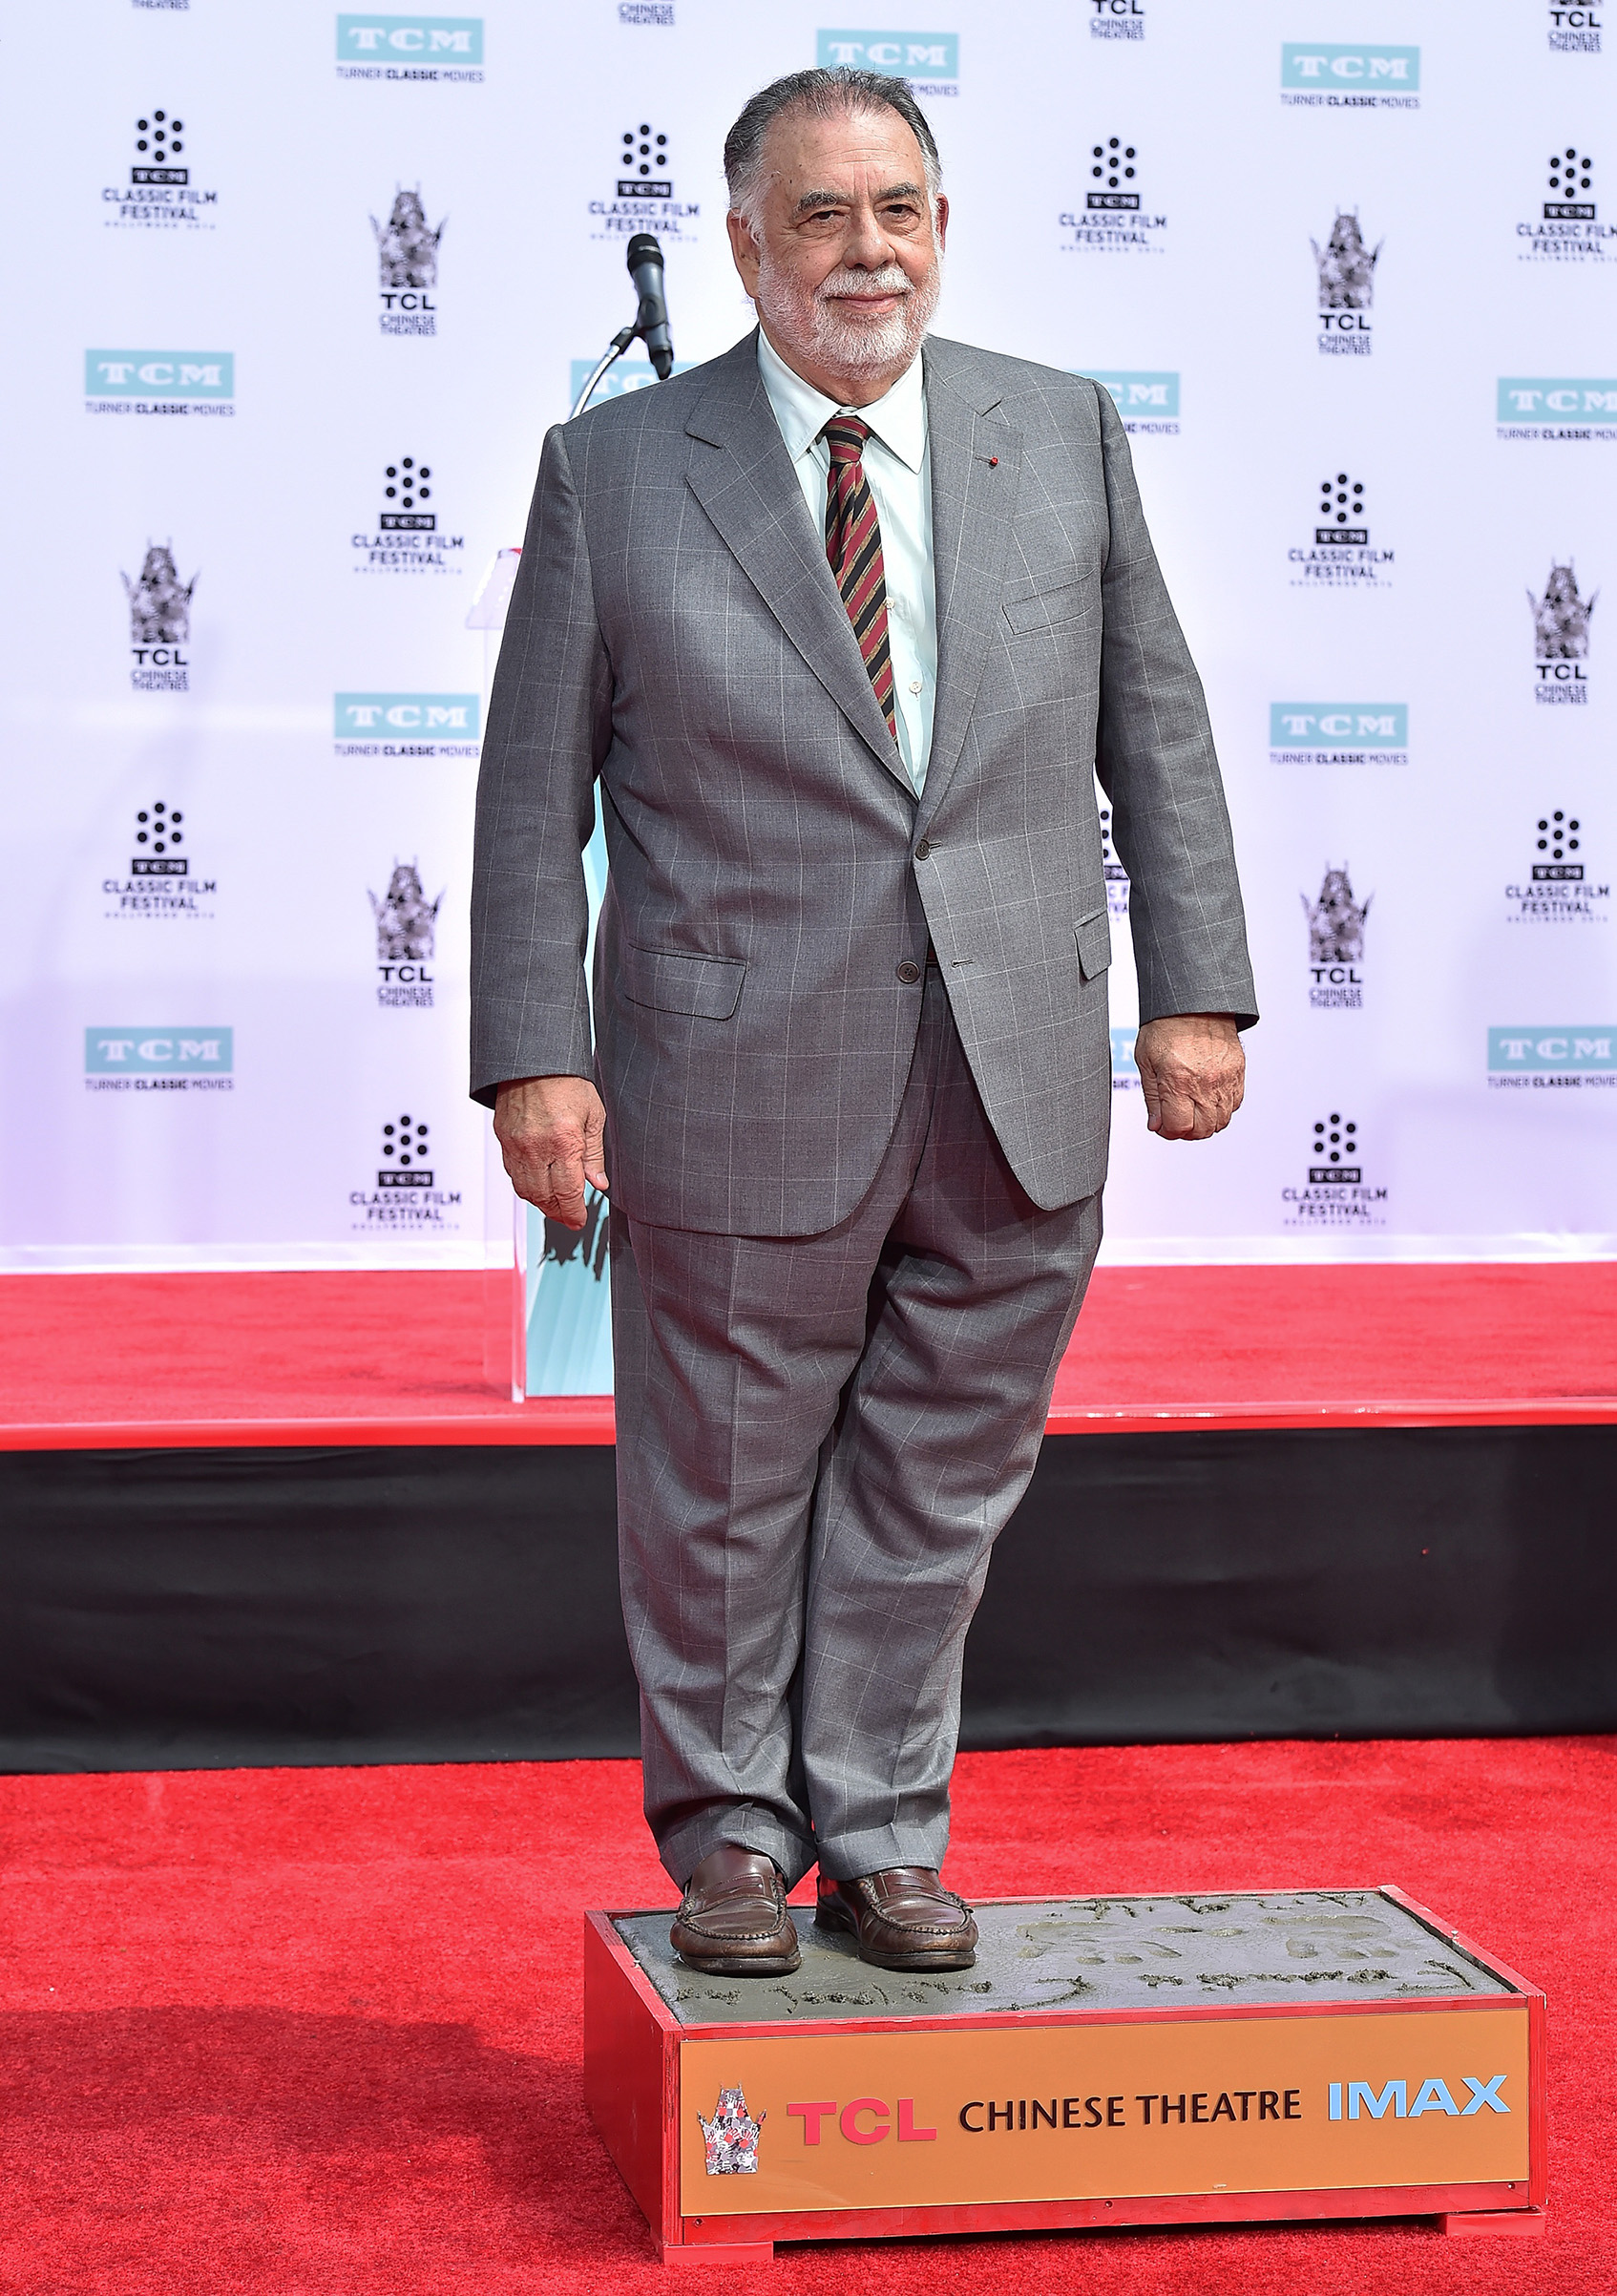 Director Francis Ford Coppola is honored with Hand and Footprint Ceremony at TCL Chinese Theatre IMAX on April 29, 2016 in Hollywood, California